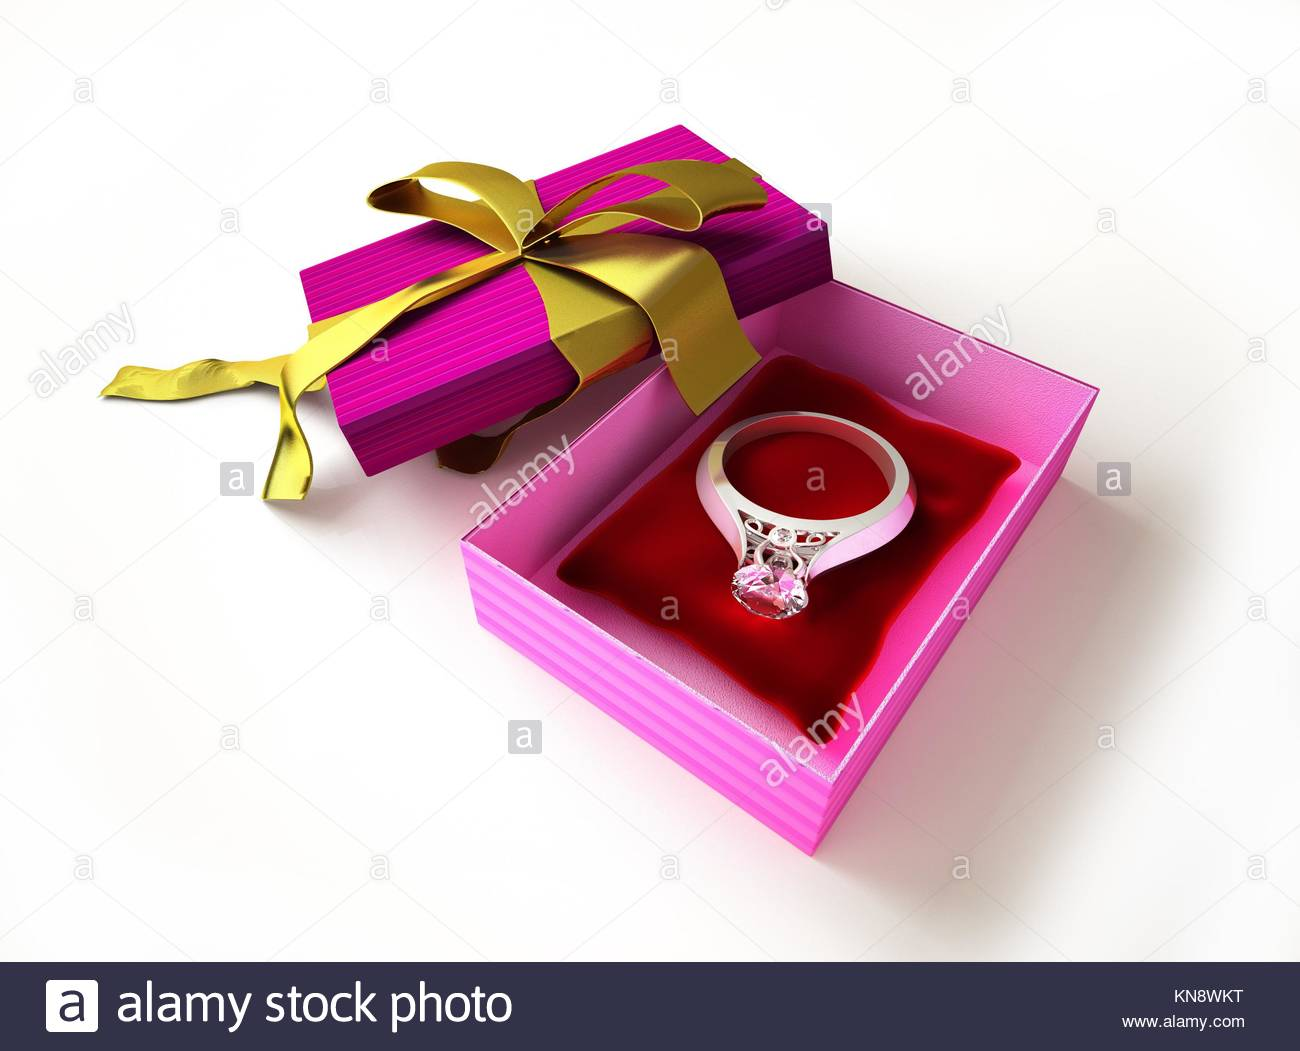 Gift package, with ribboned open cup, with ring and diamond on a pillow, inside. Stock Photo